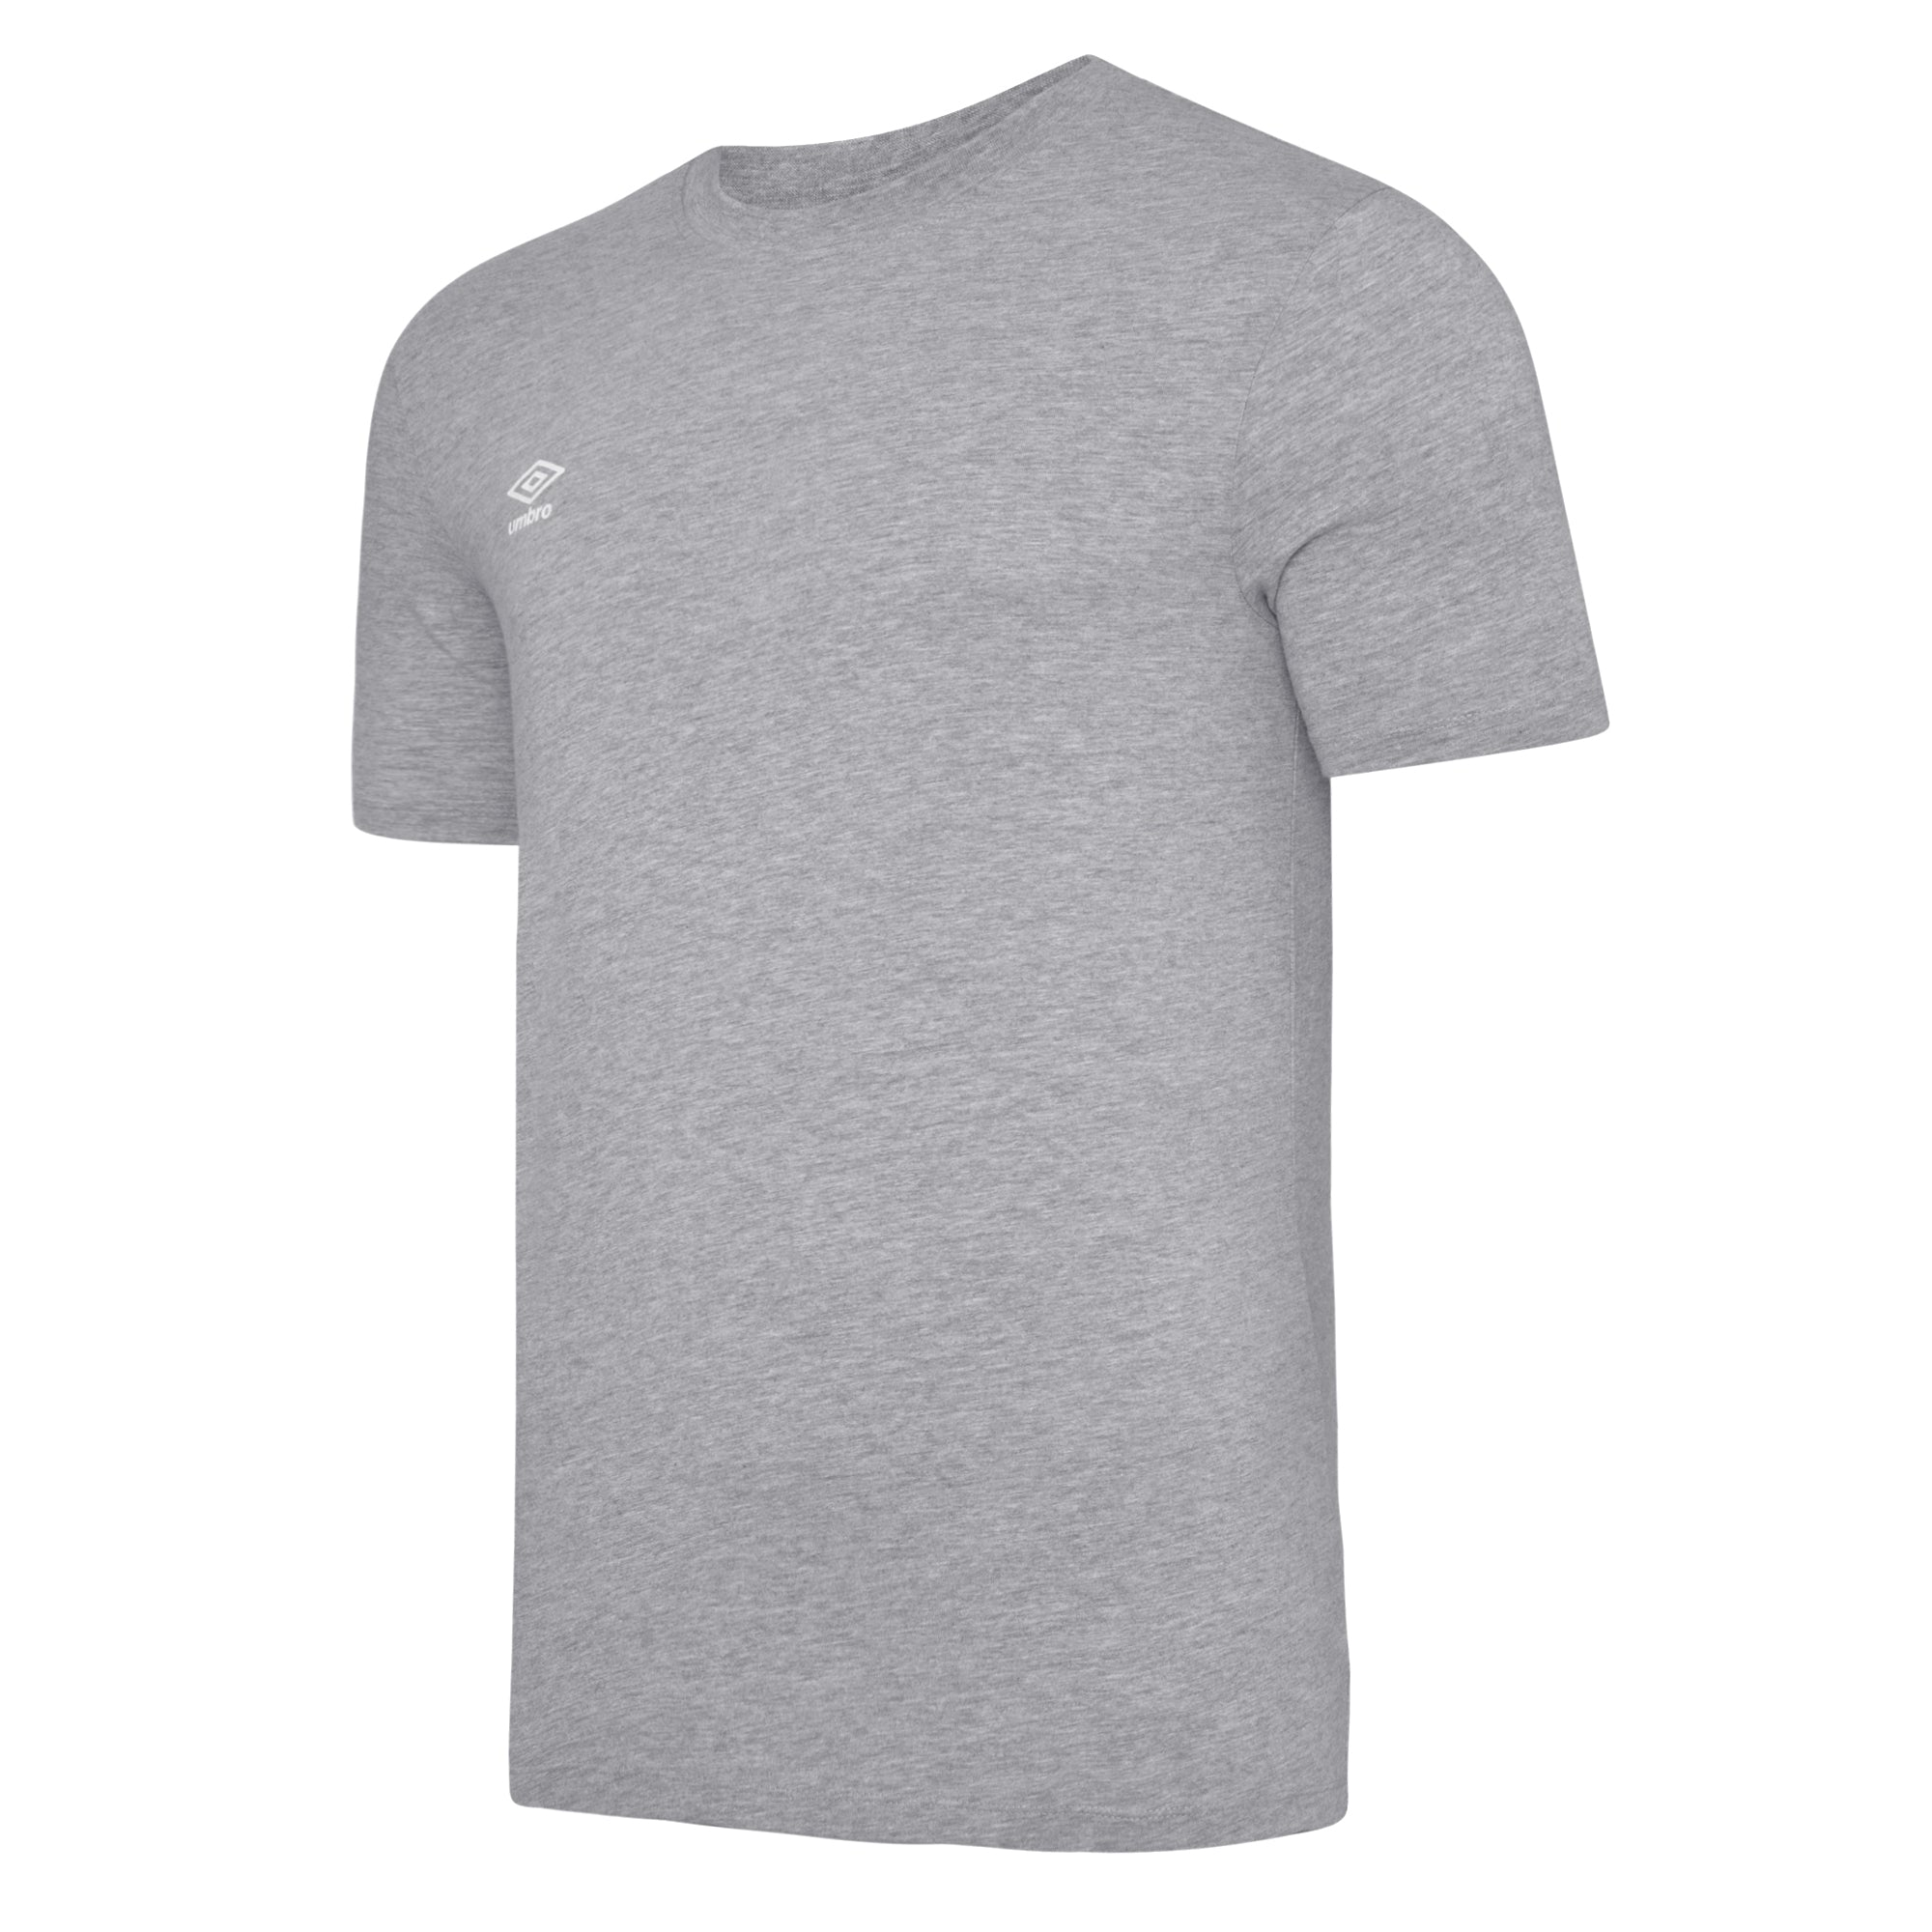 Umbro Club Leisure Crew Tee - Grey Marl/White